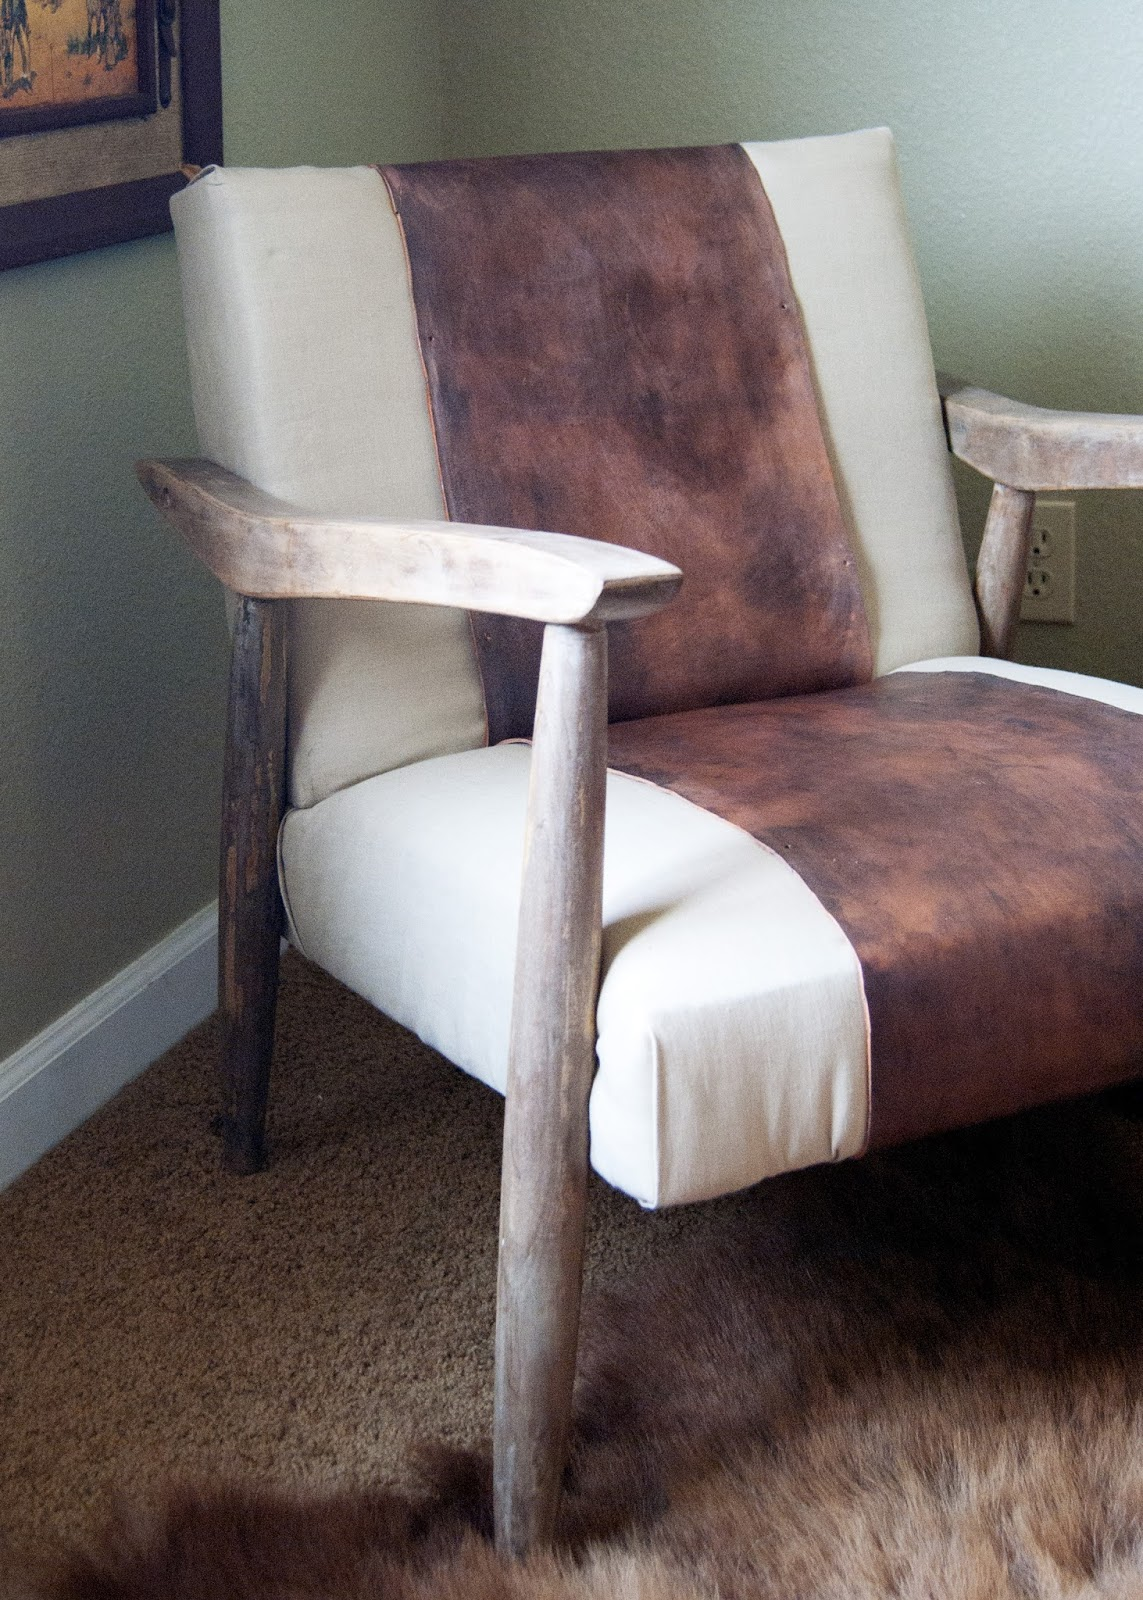 Vinegar stained legs, linen fabric and leather